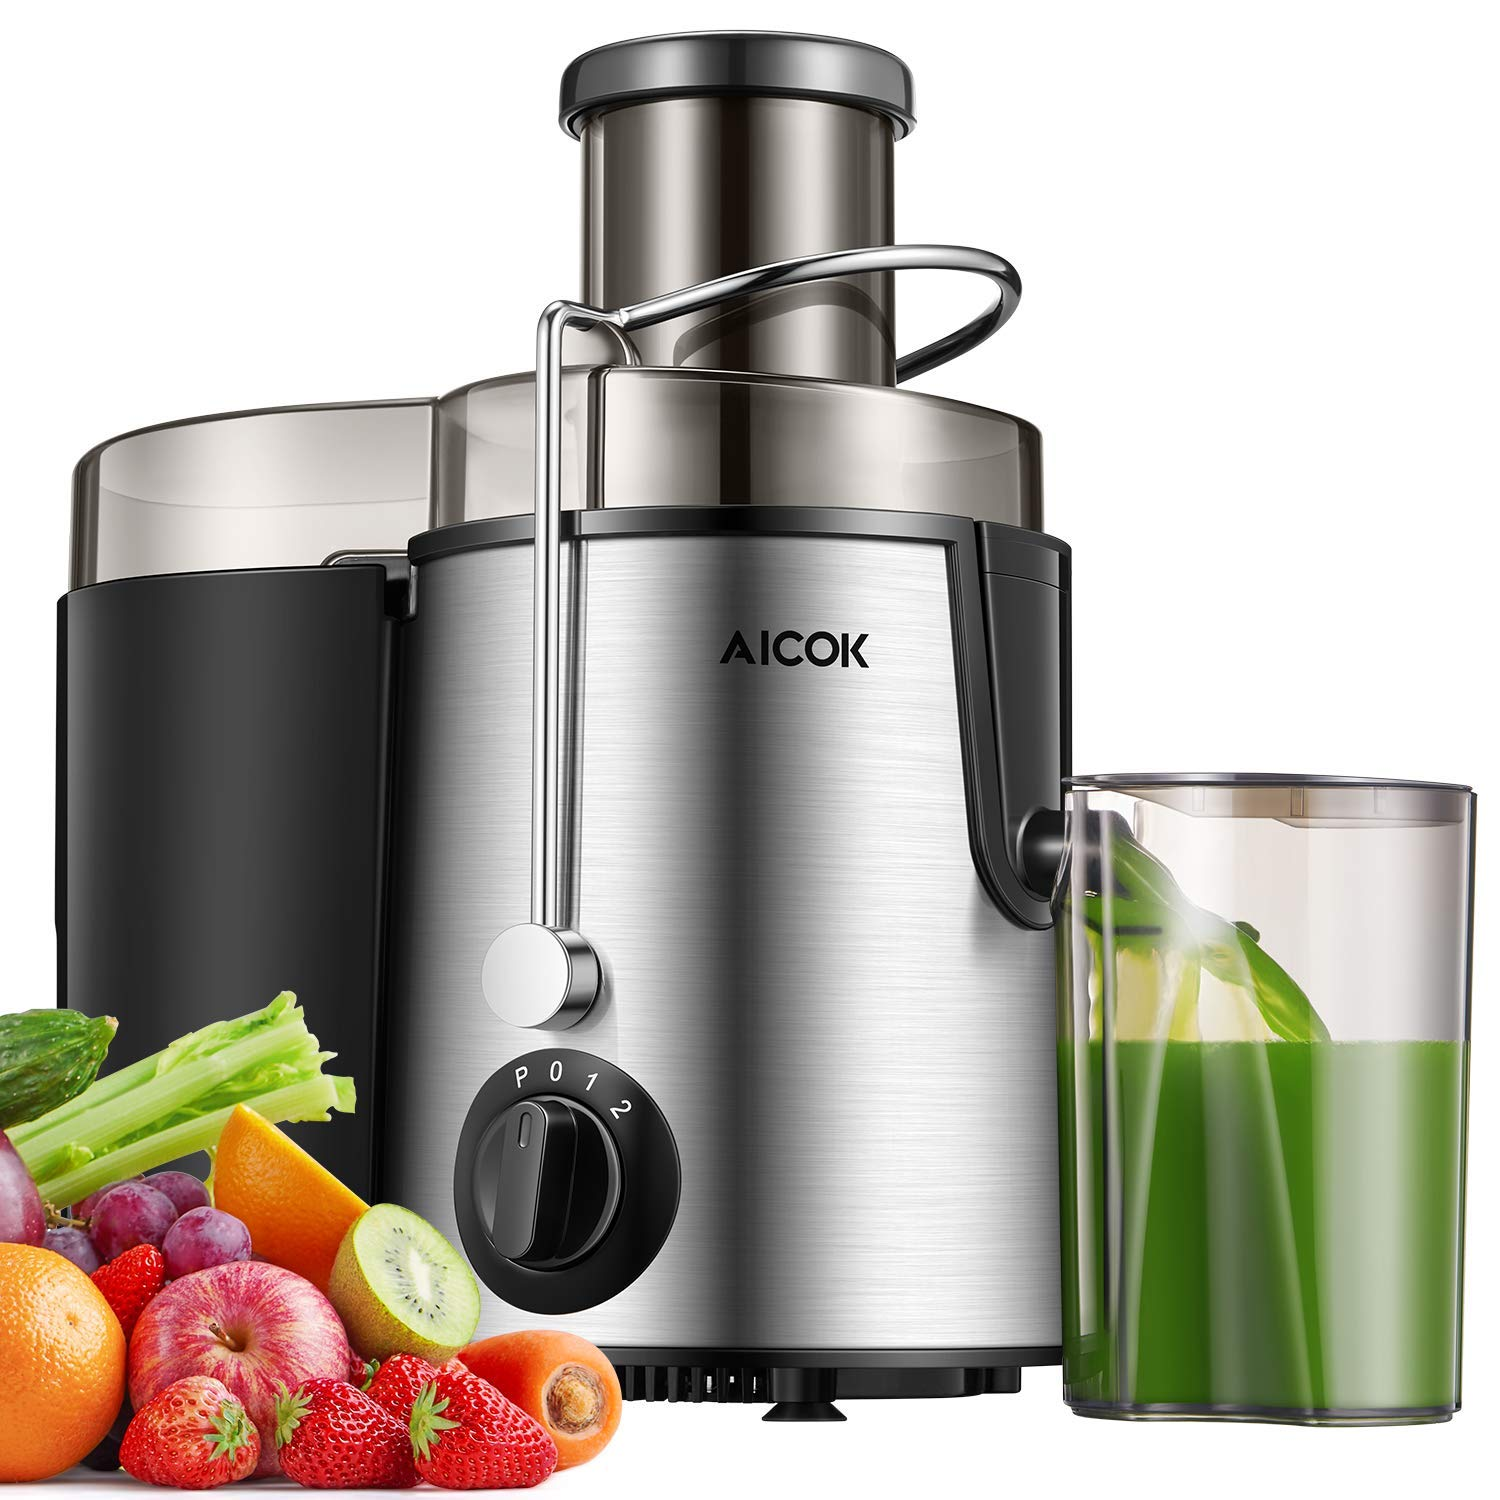 Centrifugal Juicer, Juice Extractor with Best pulp filter, 3'' Feed ChuteJuicer Machine for Whole Fruit Vegetable, Ease of cleaning and Anti-drip, BPA-Free